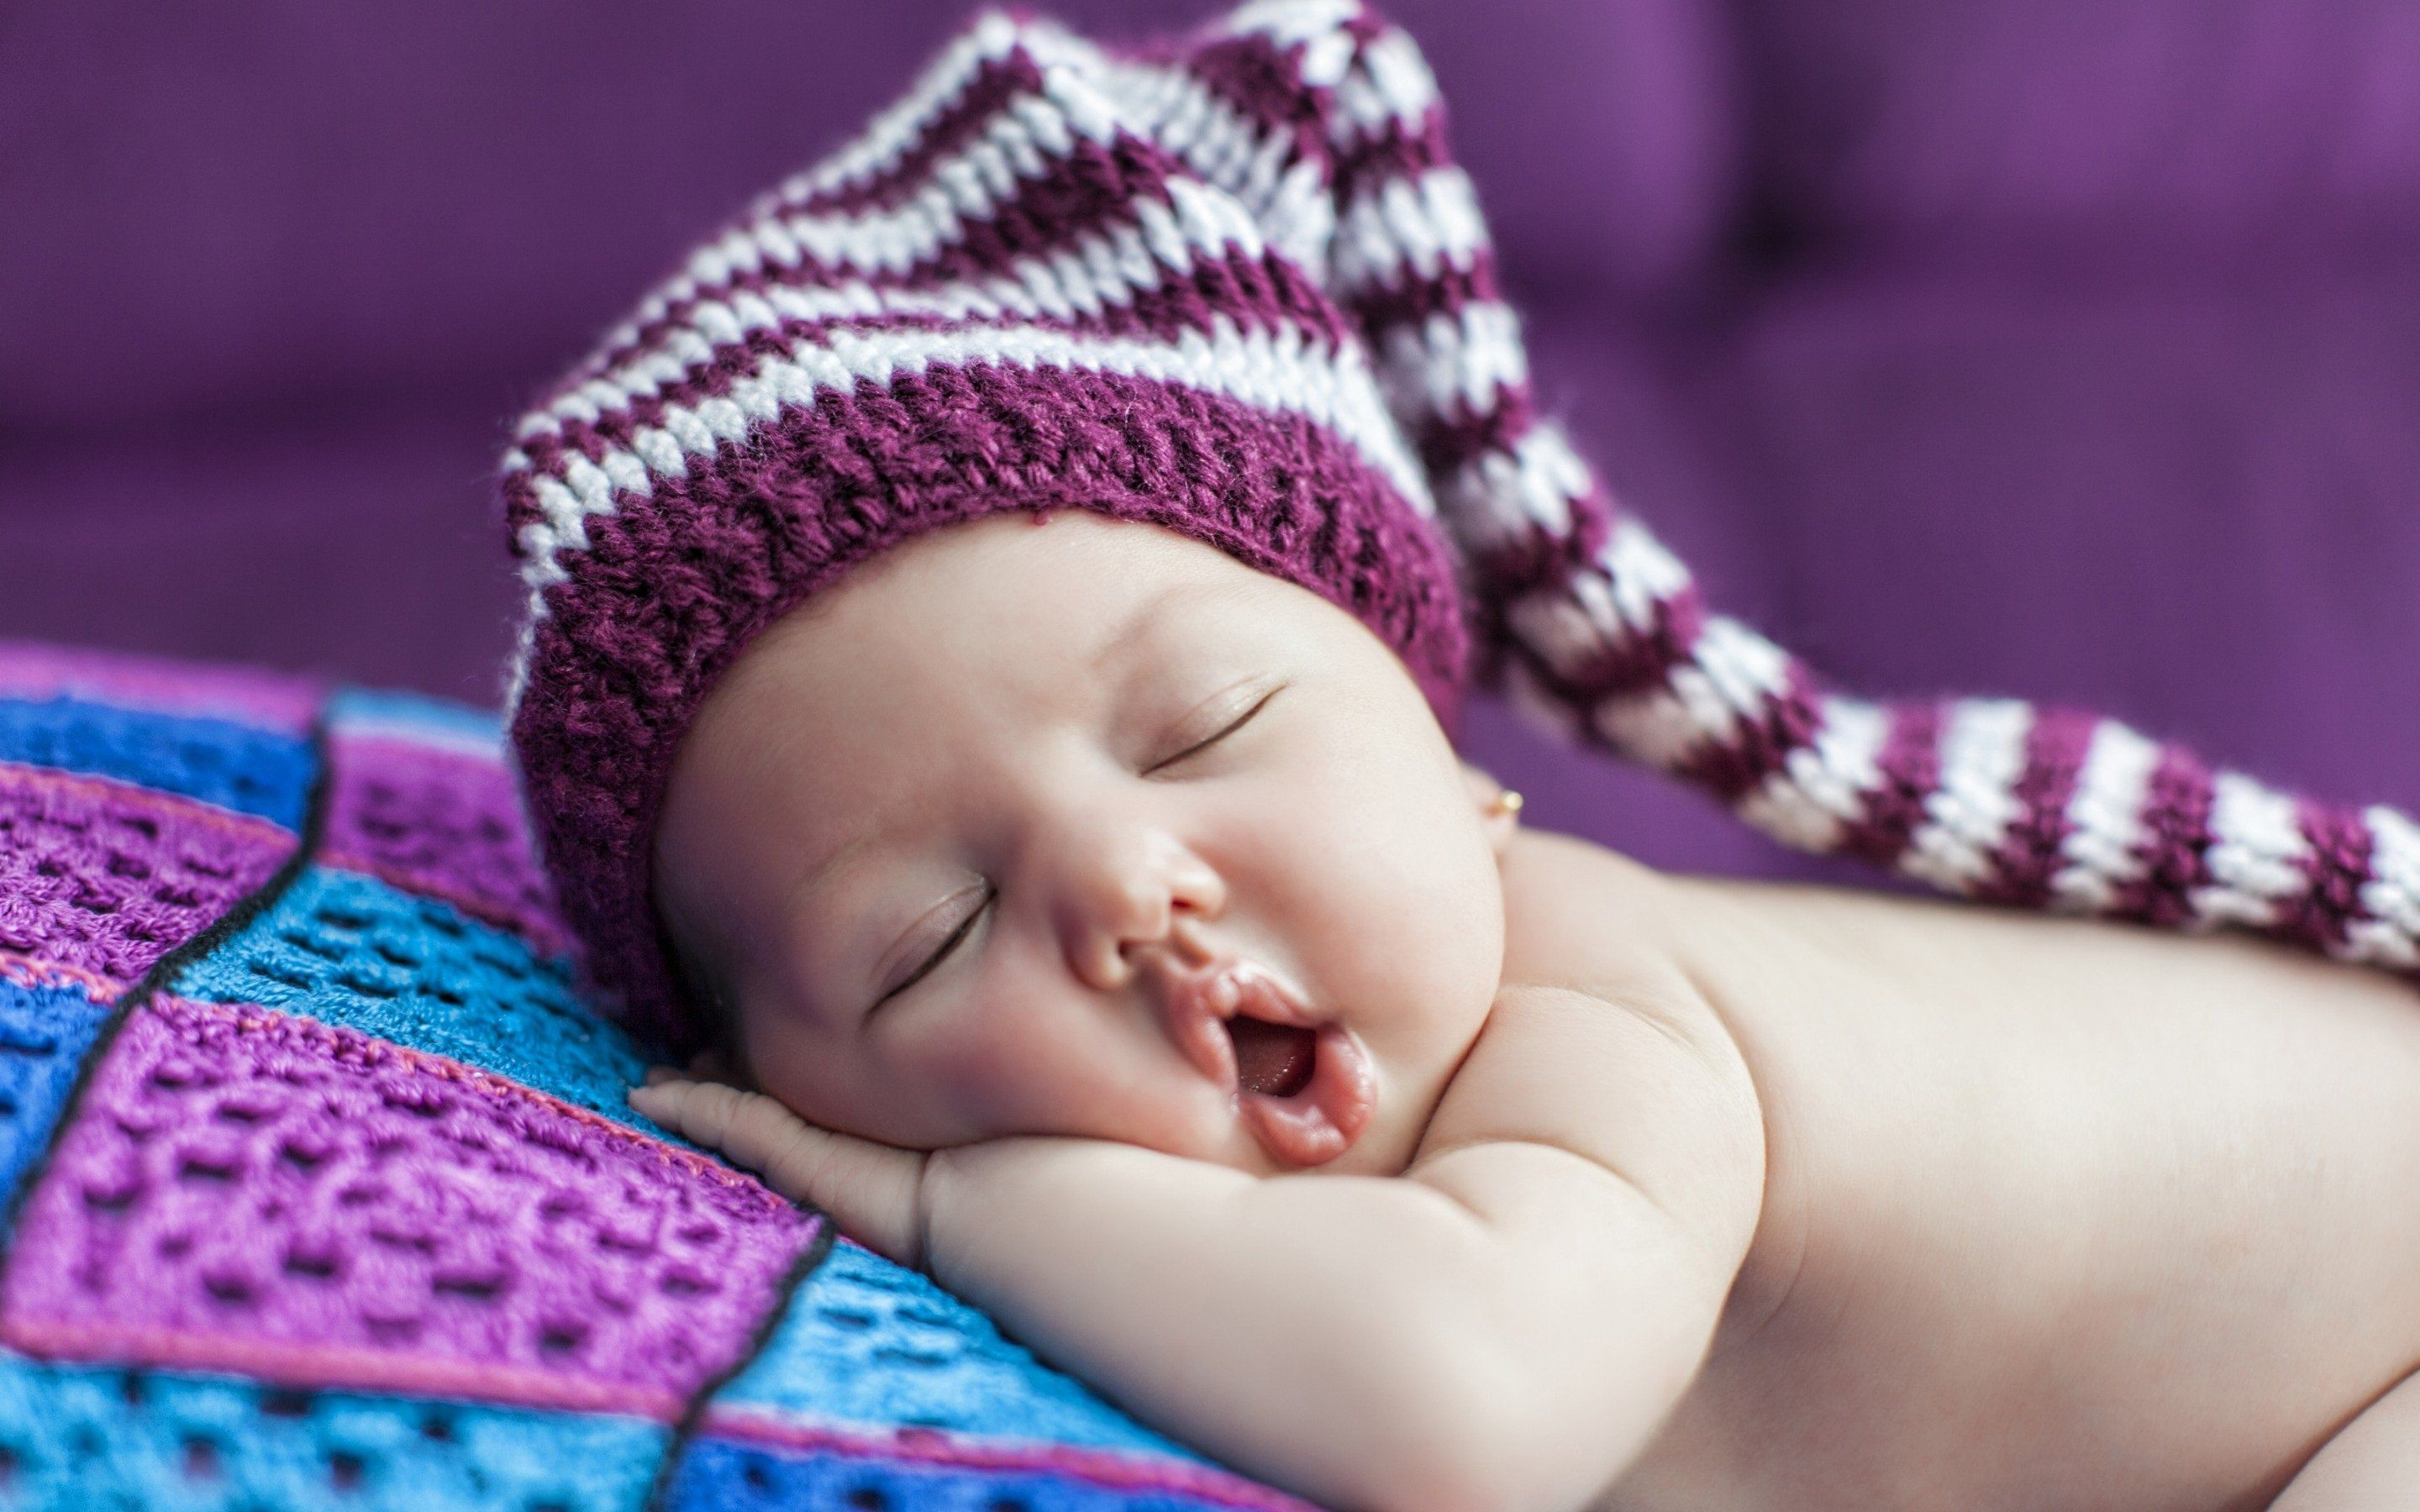 Cute Newborn Baby Hd Wallpapers Cute Baby Wallpaper Newborn Baby Sleep How To Fall Asleep